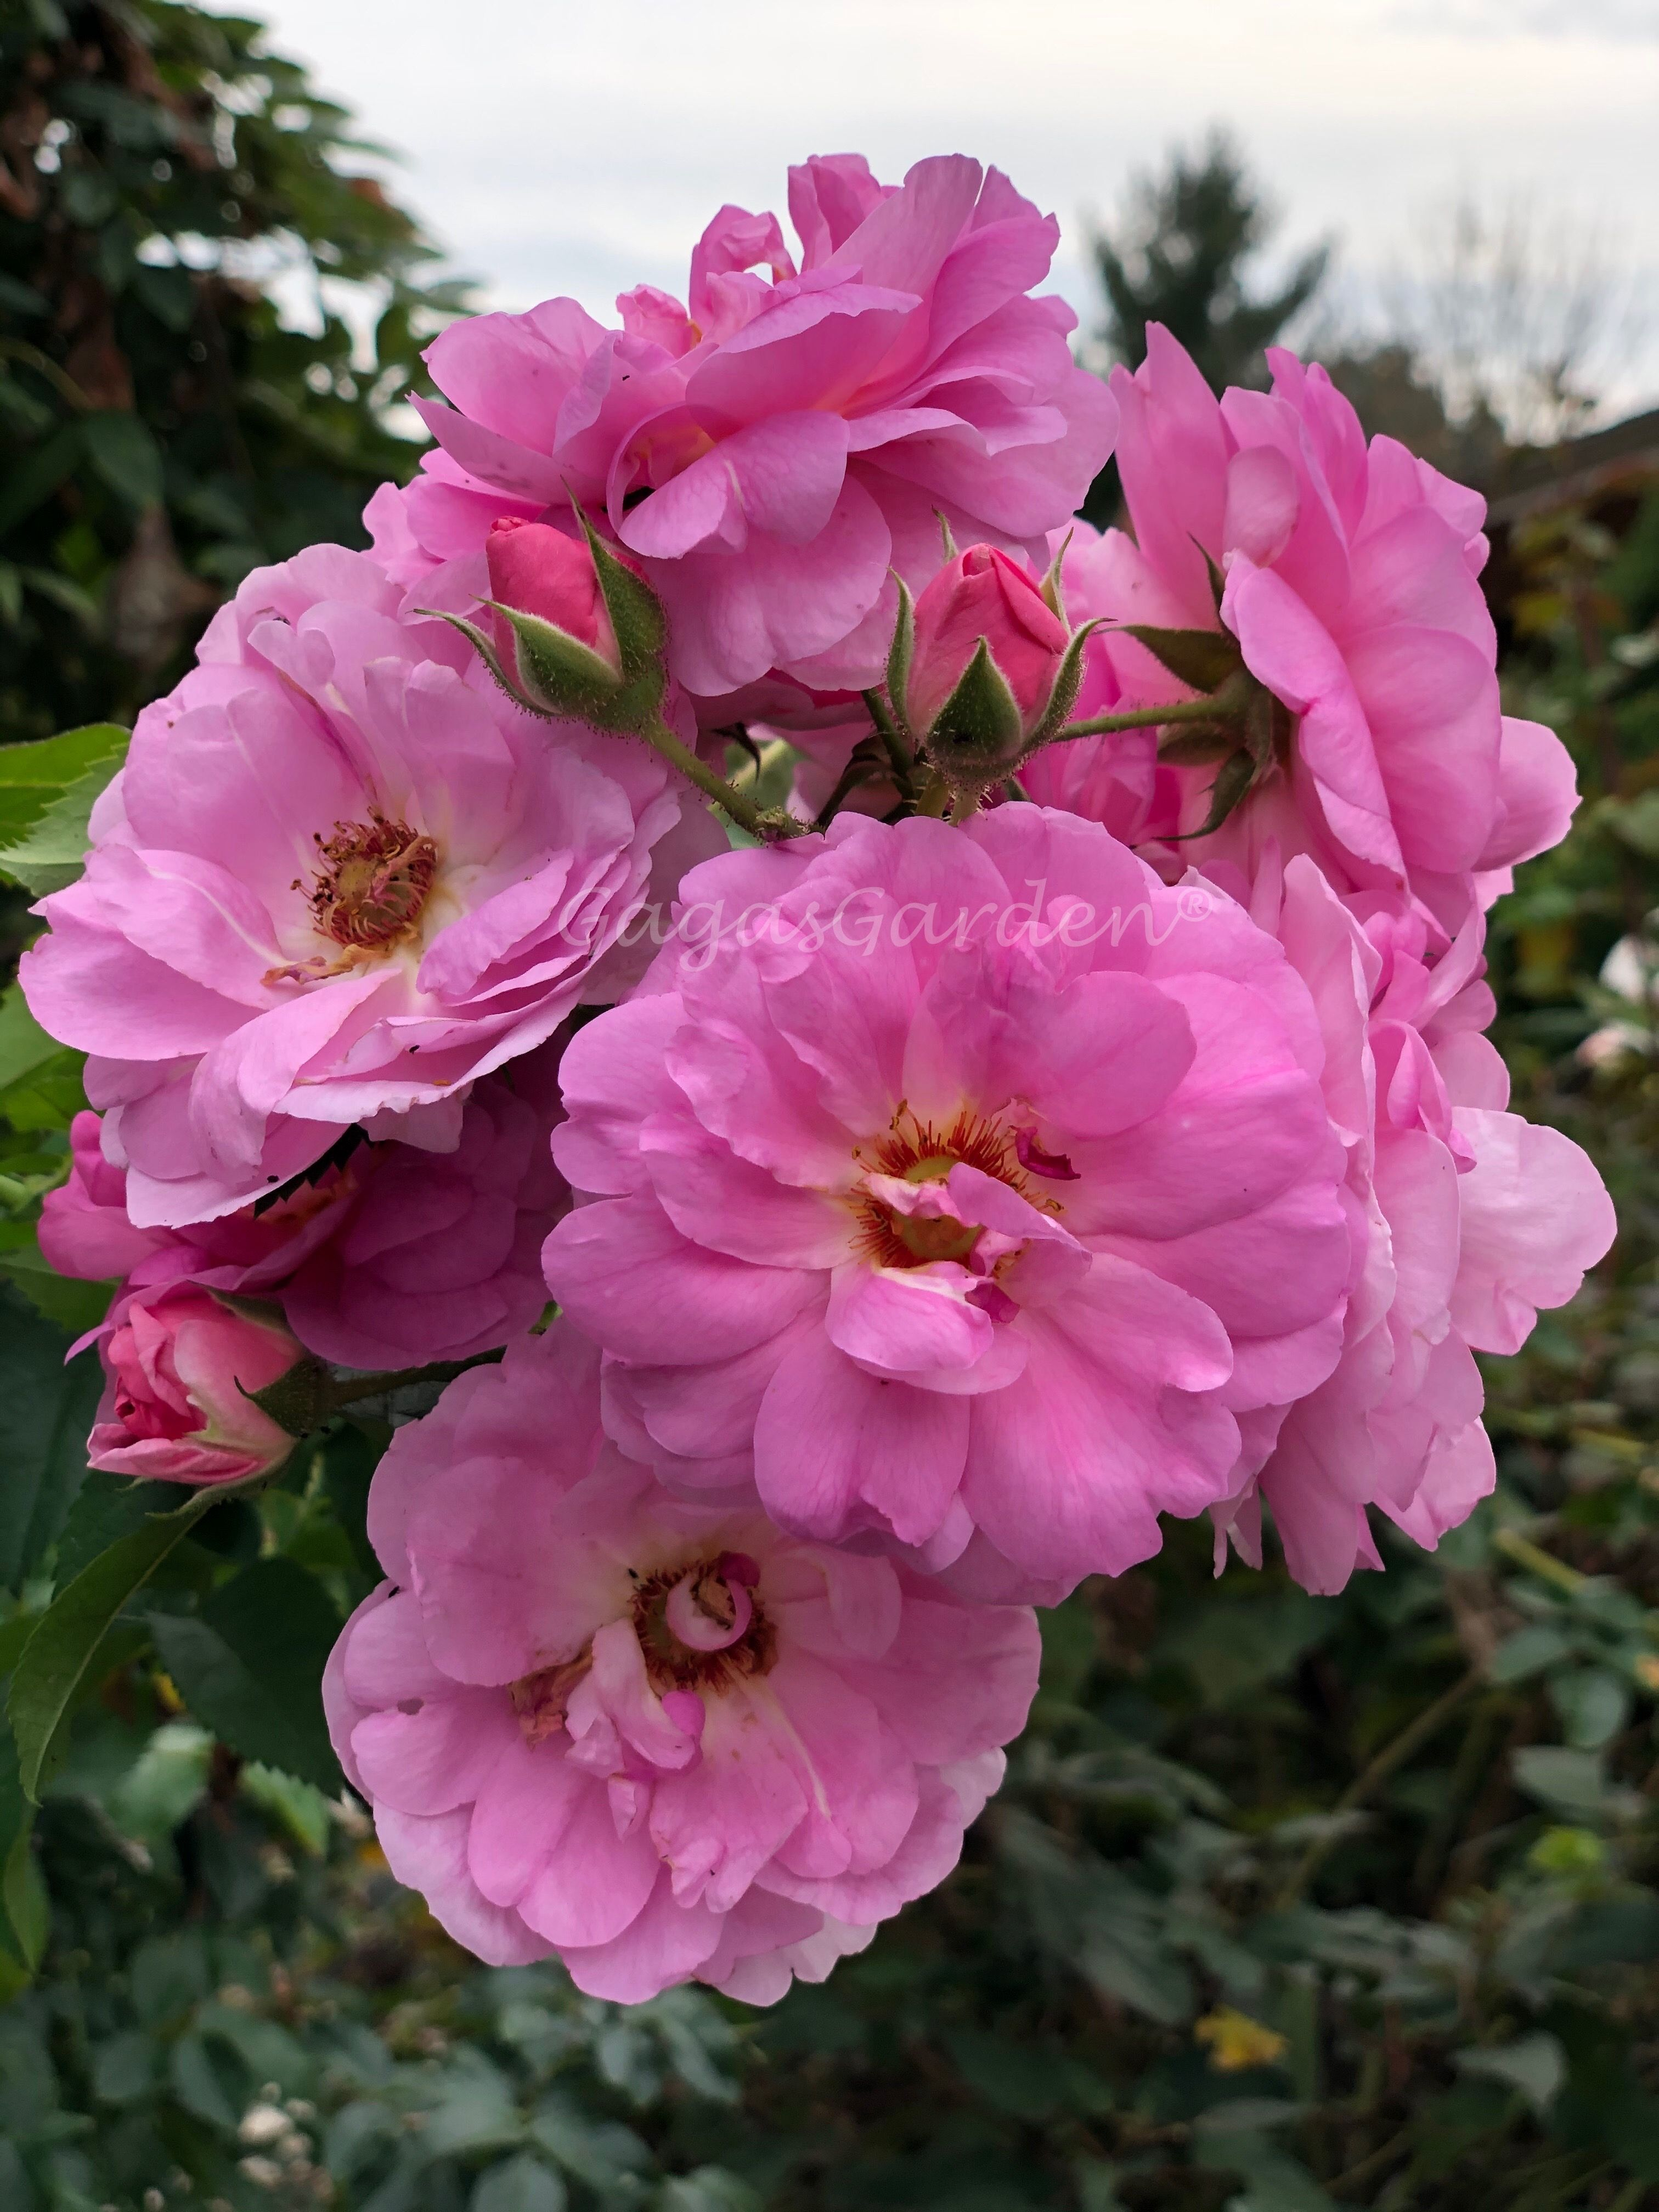 Among the most disease resistant of roses, if you want